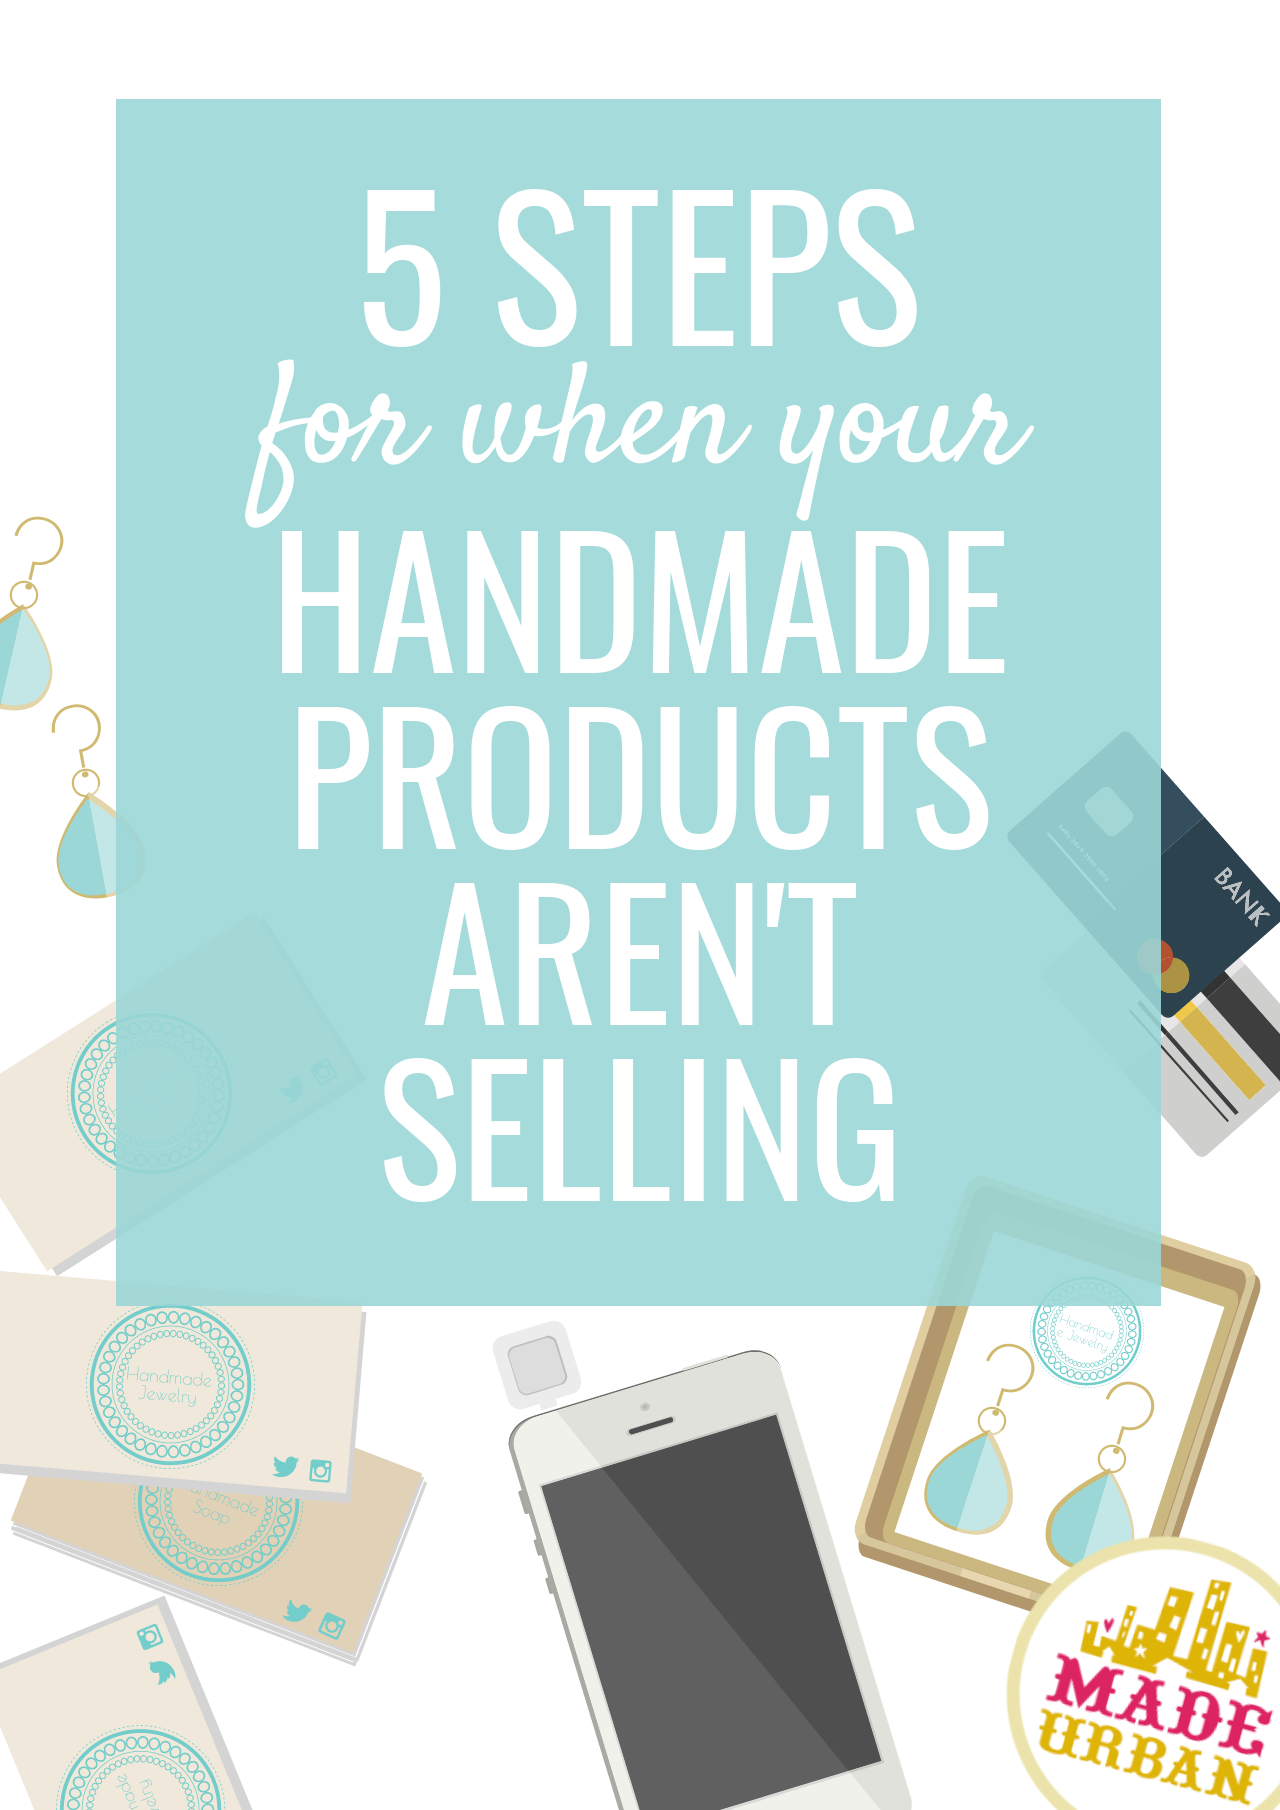 Whether you rely on crafting as a source of income or not, if those products aren't selling, do you keep creating? How to get sales so you can keep creating